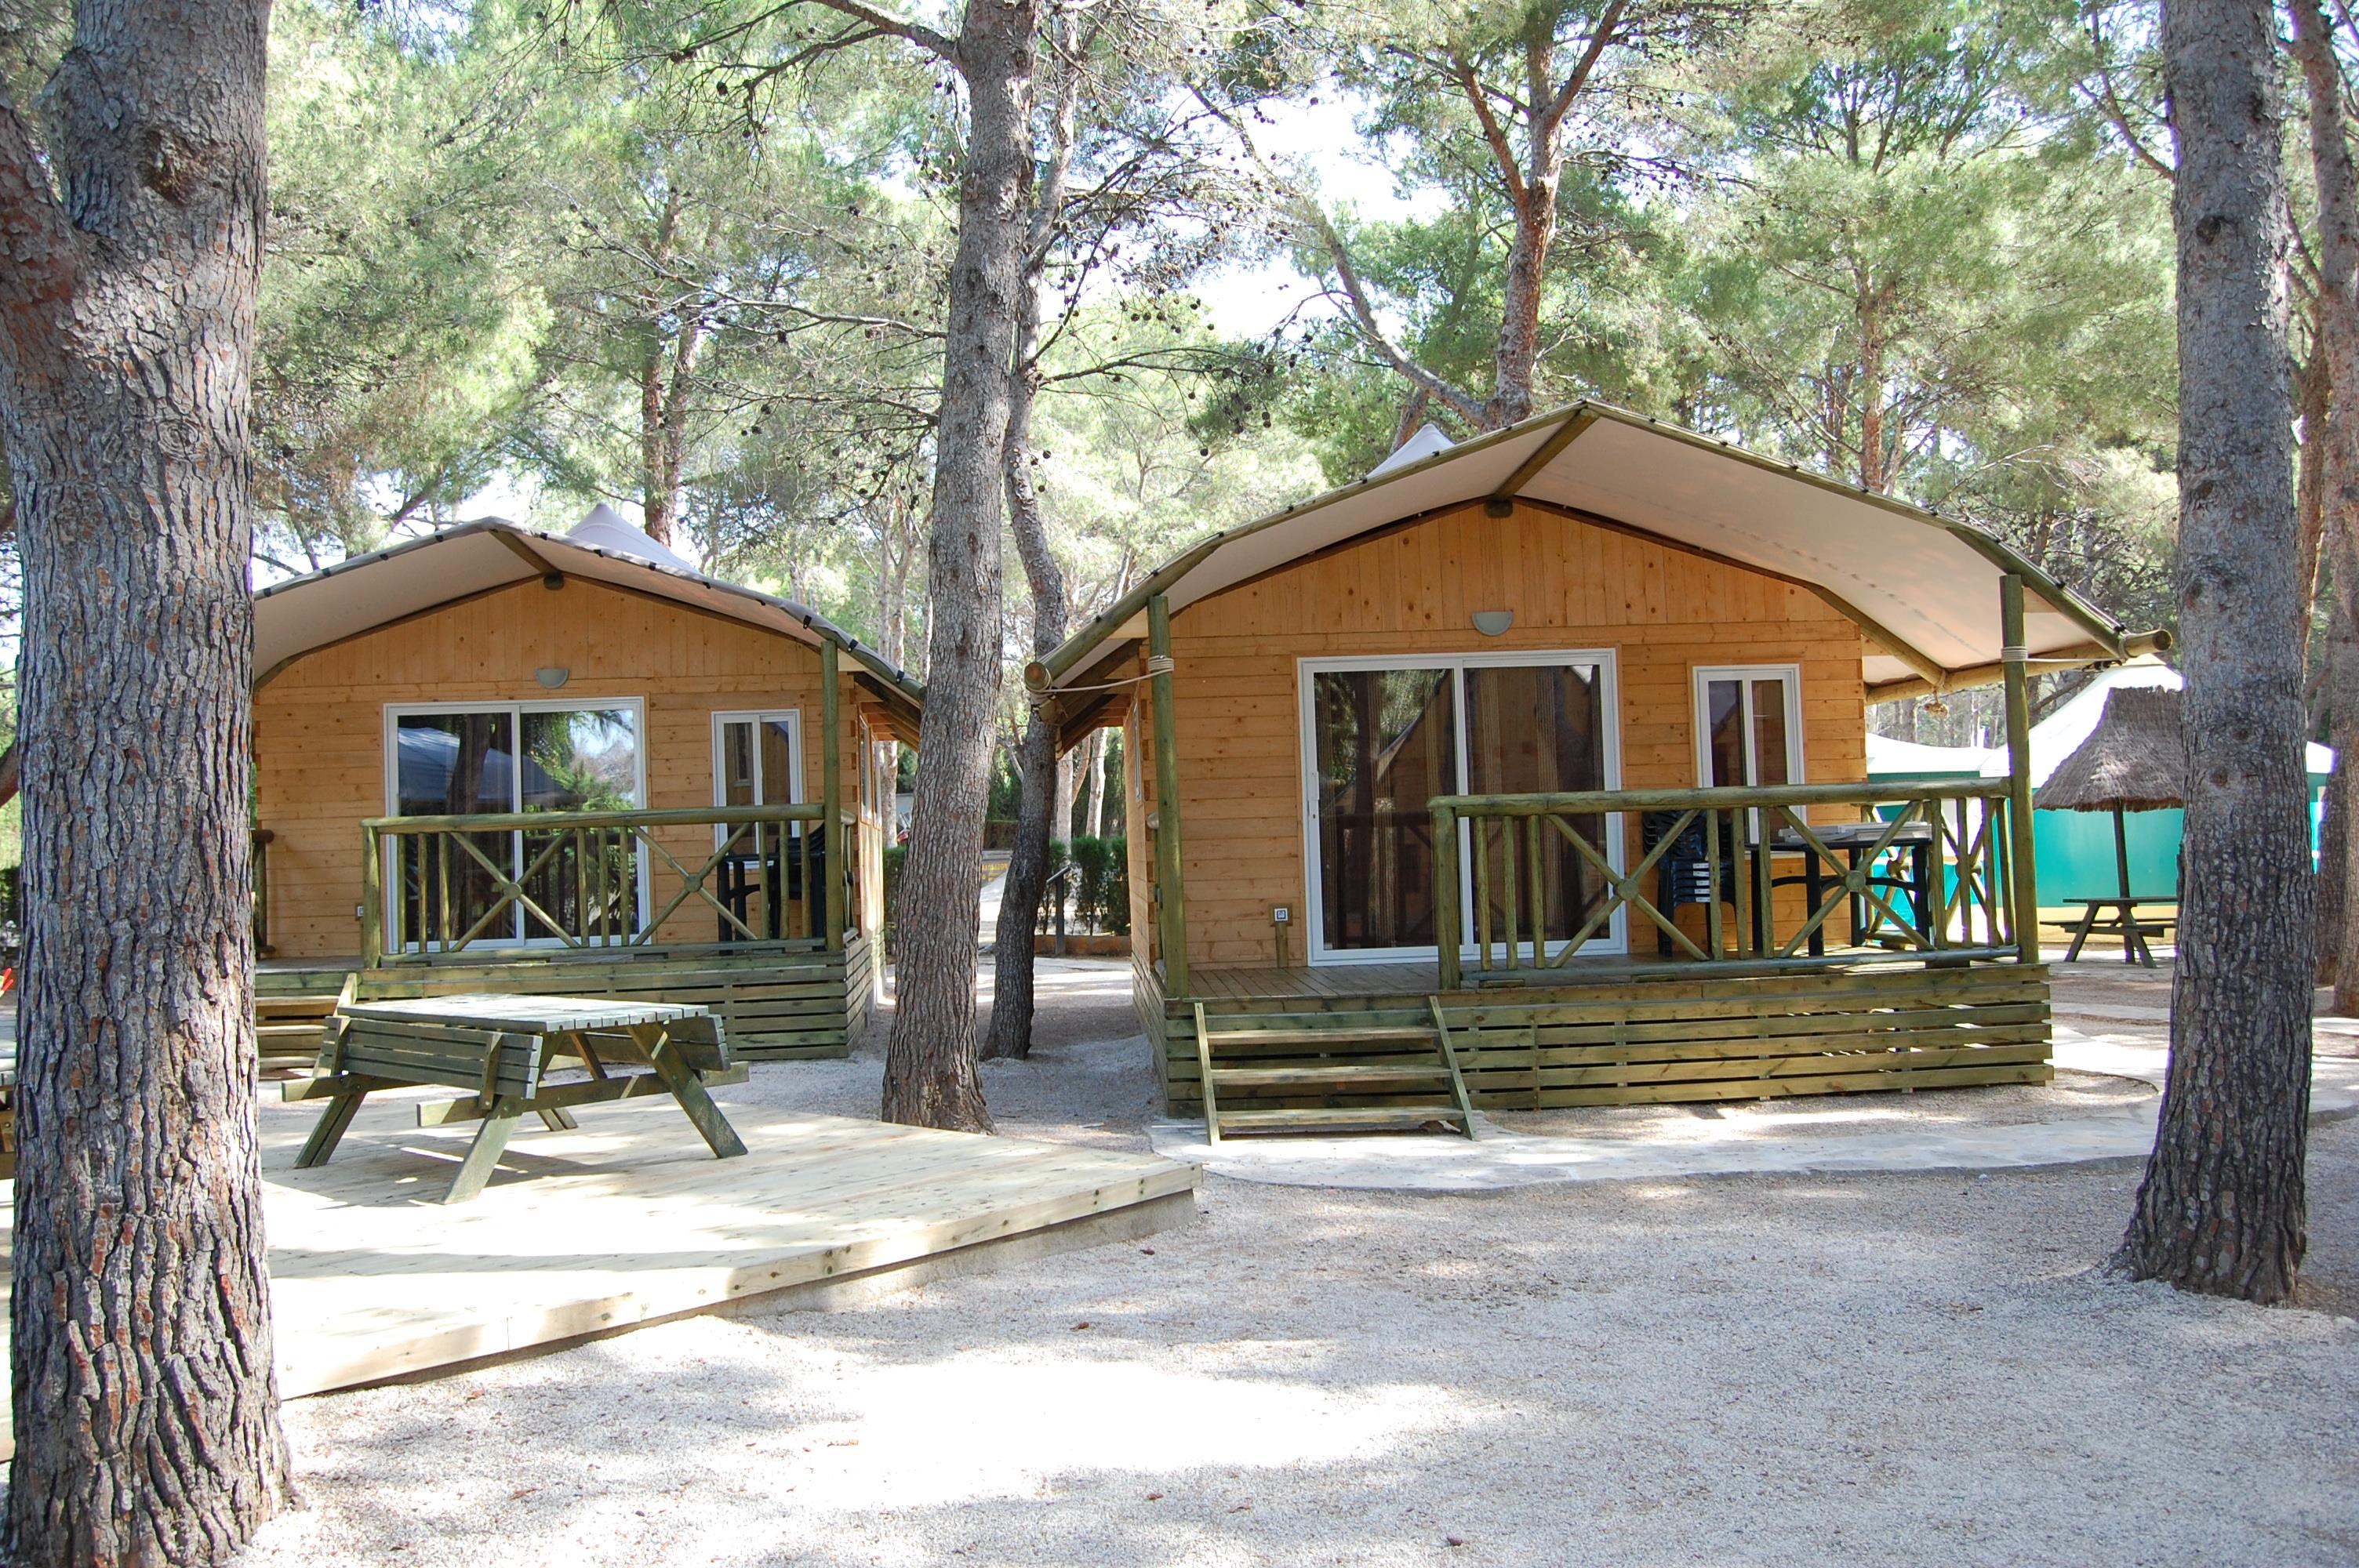 Accommodation - Lodge (2 Bedrooms) - Camping La Torre del Sol